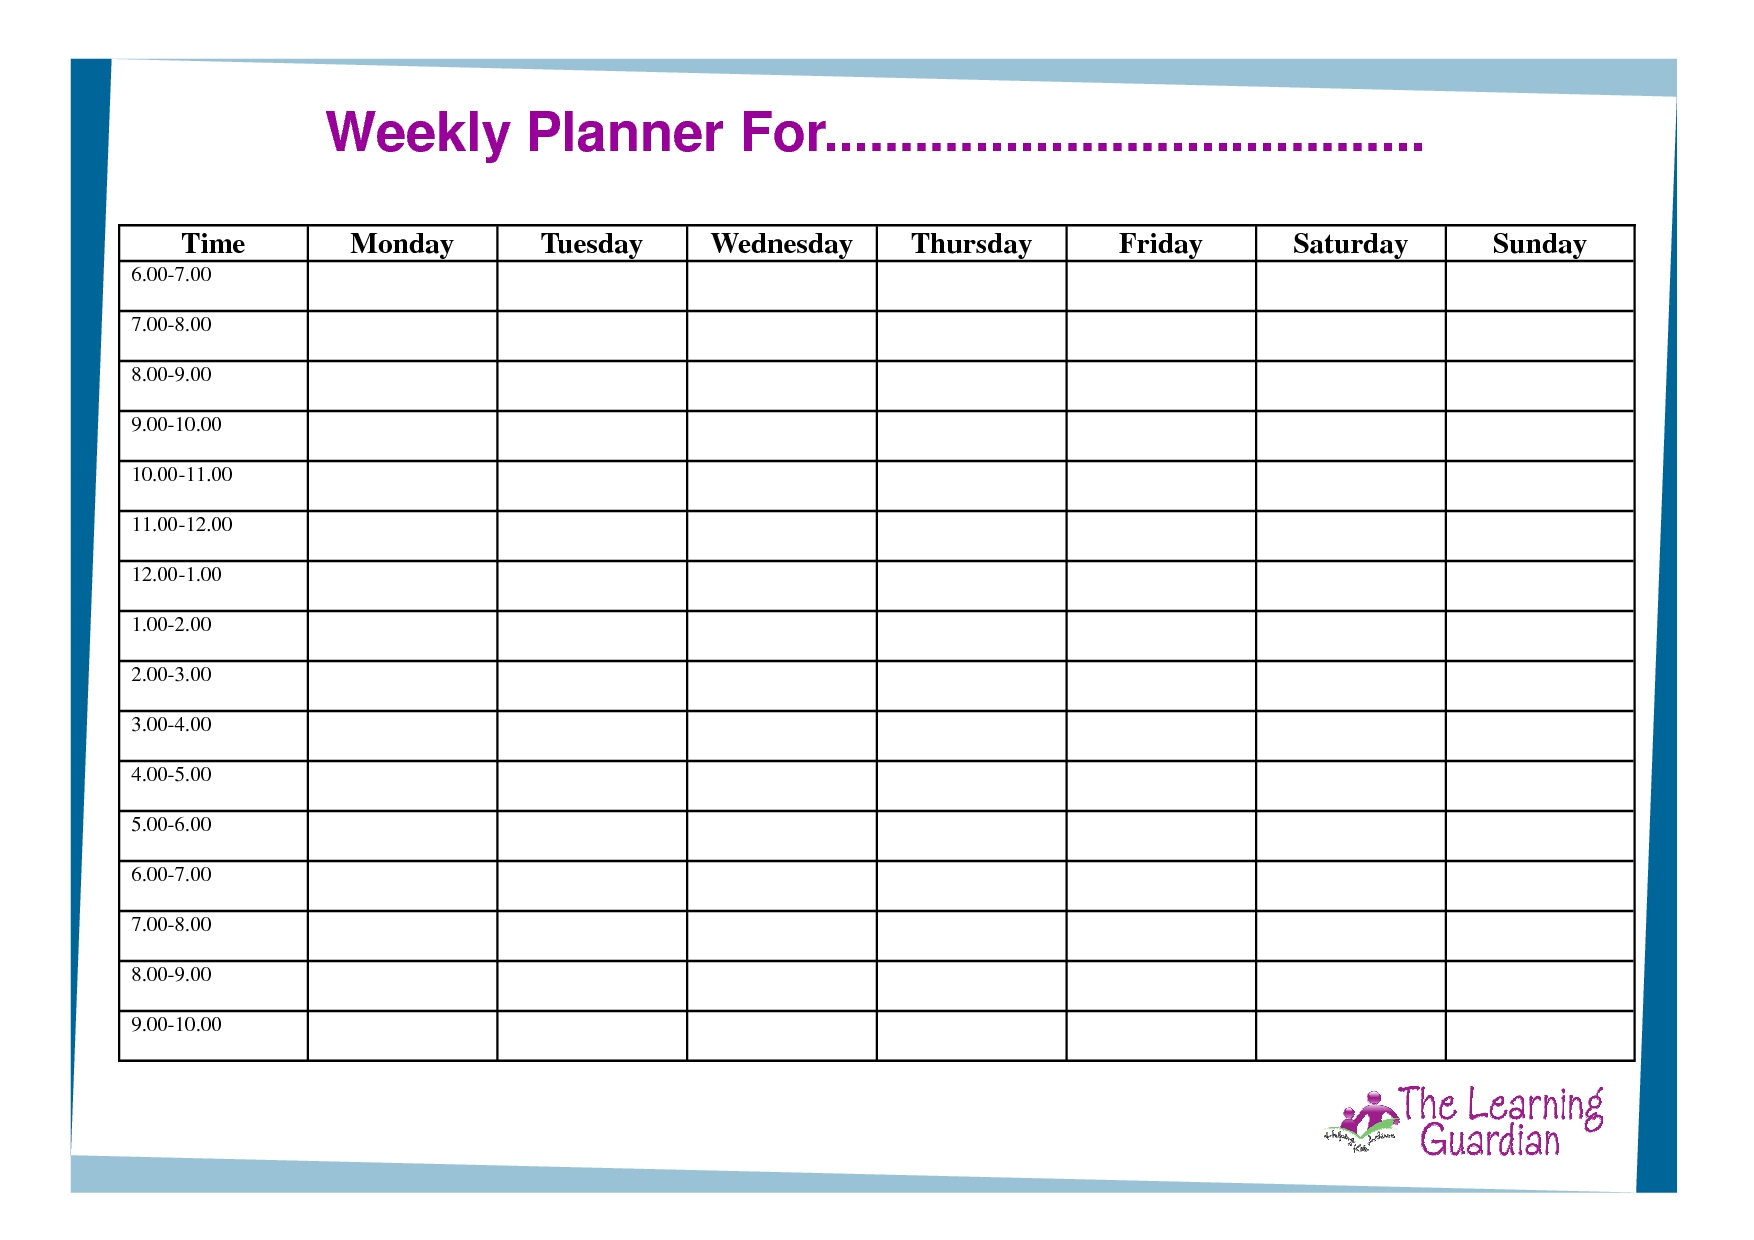 July 2018 - Page 2 - Template Calendar Design Weekly Planner With Time Slots Pdf